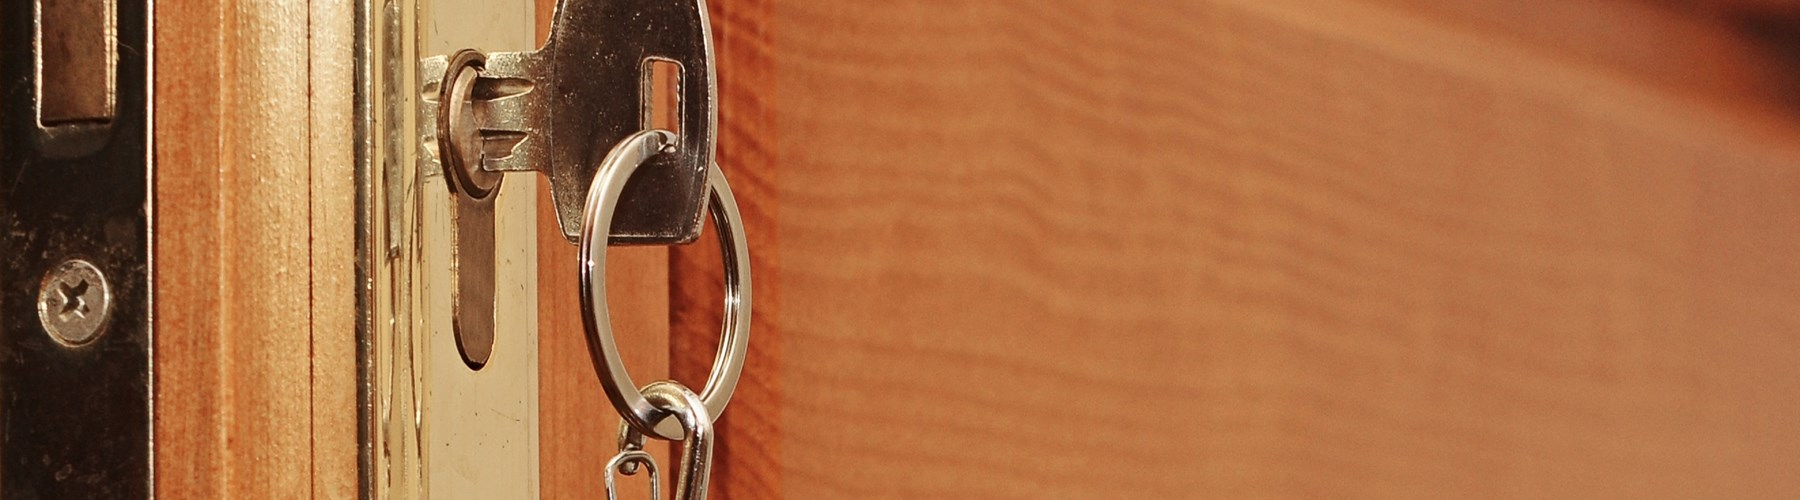 A wooden door being locked with silver key